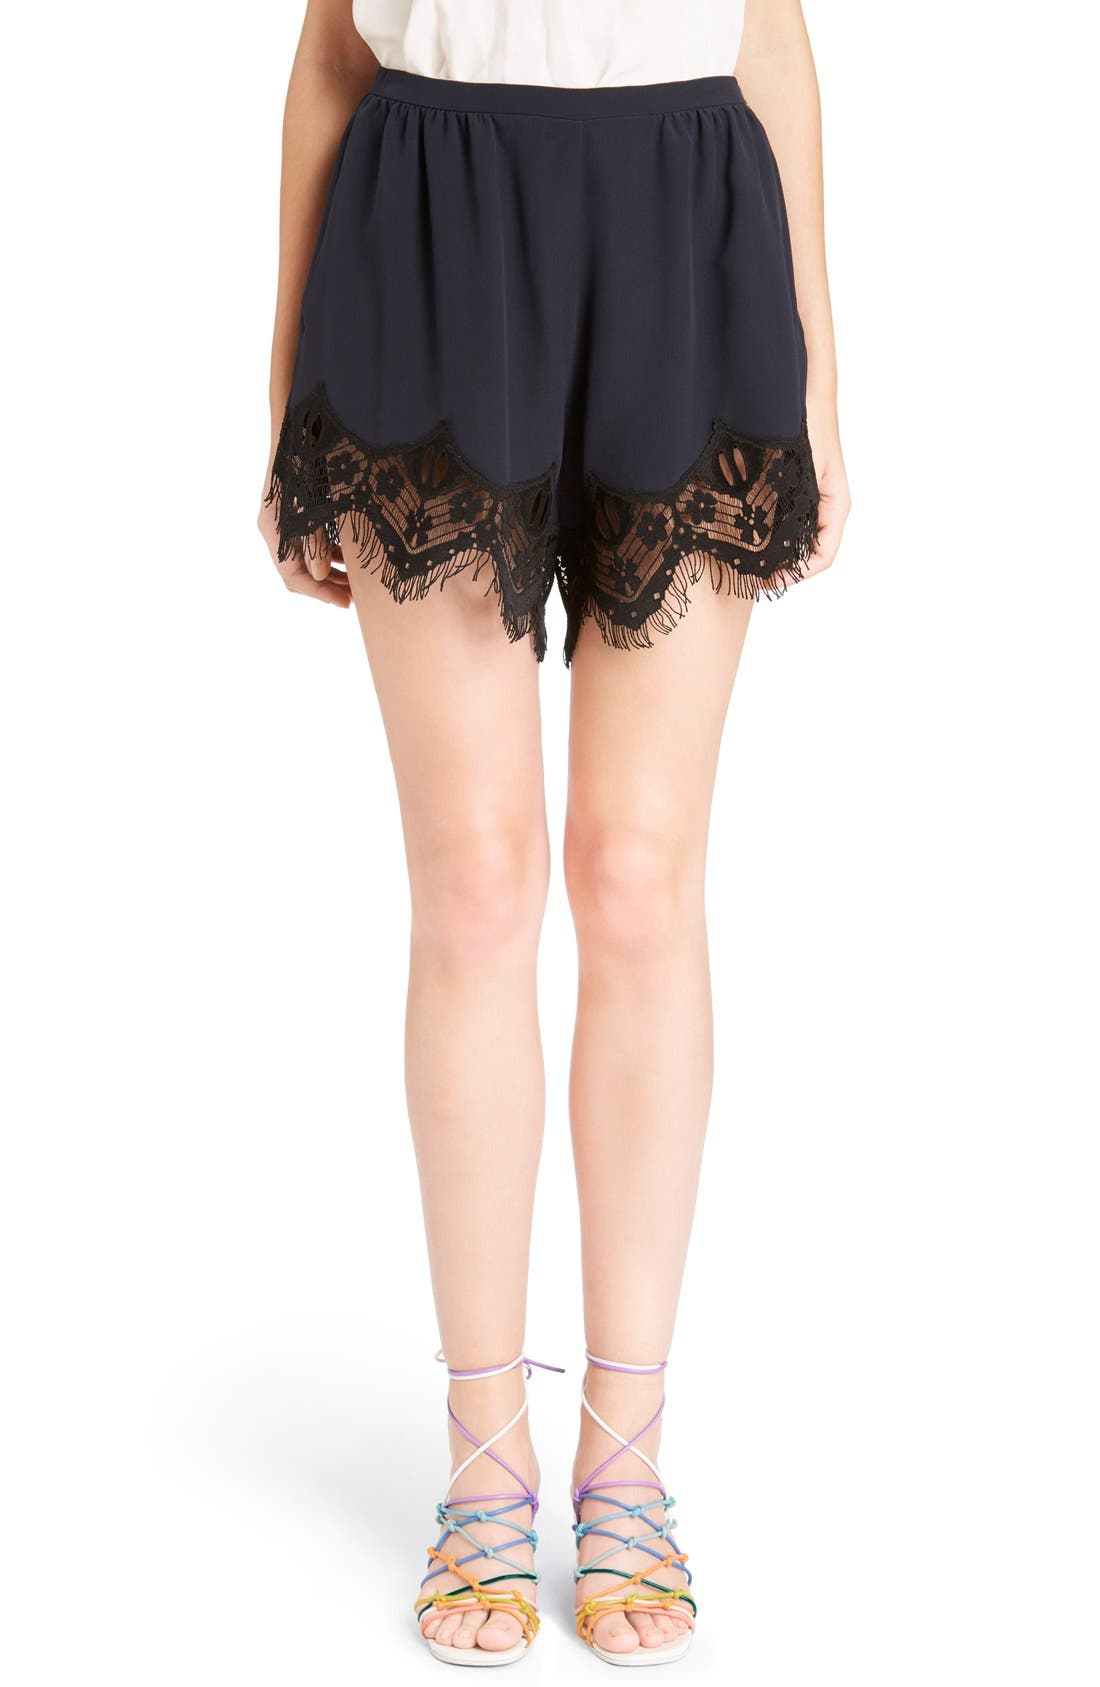 Alternate Image 1 Selected - Chloé Fringed Floral Lace Trim Silk Shorts